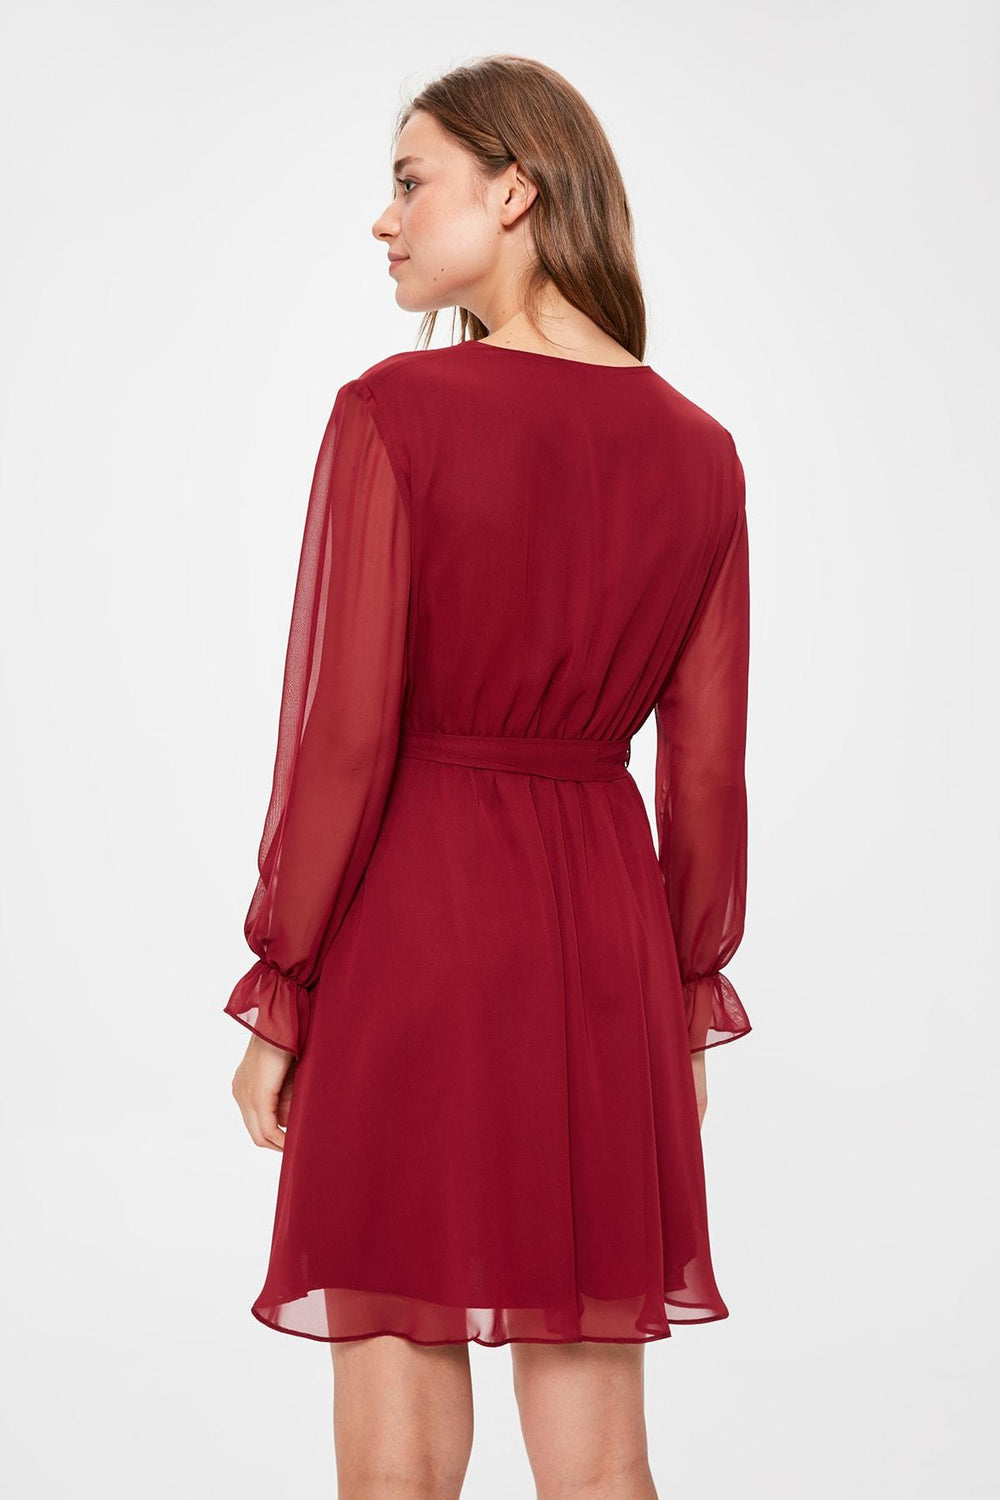 Burgundy Belted Dress - Top Maxy